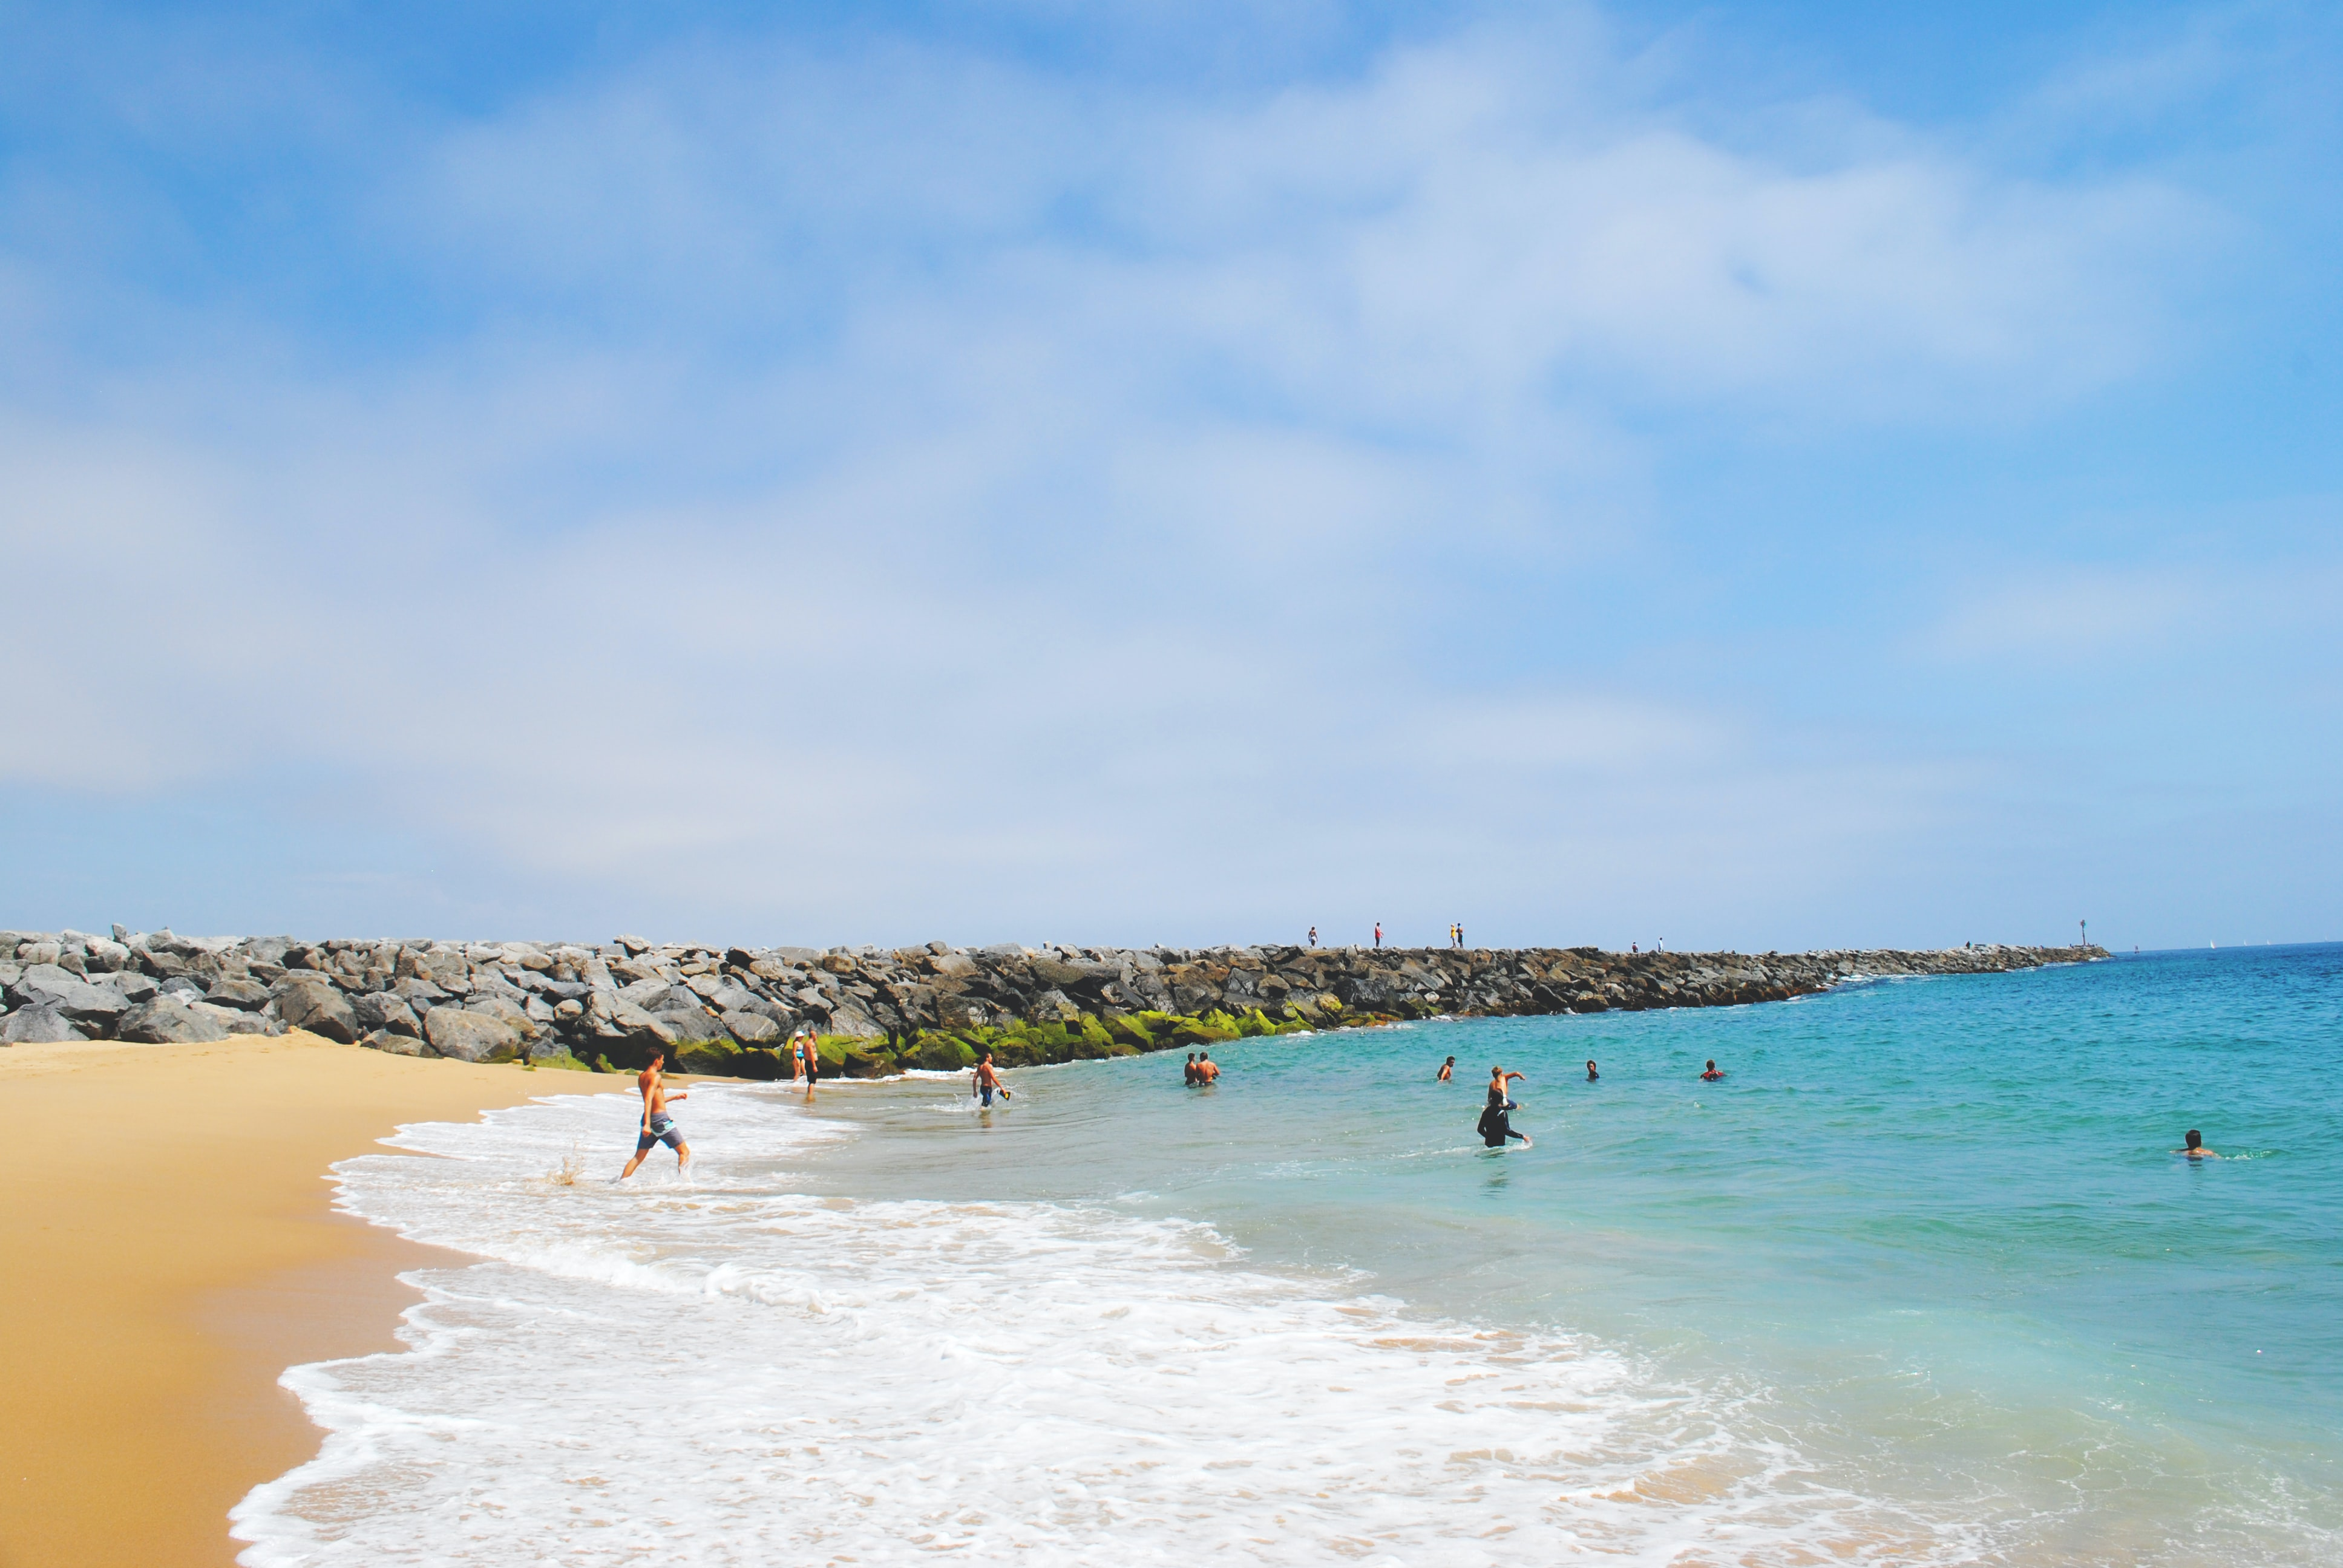 People enjoying and swimming in the ocean with side rocks during summer holiday in Newport Beach